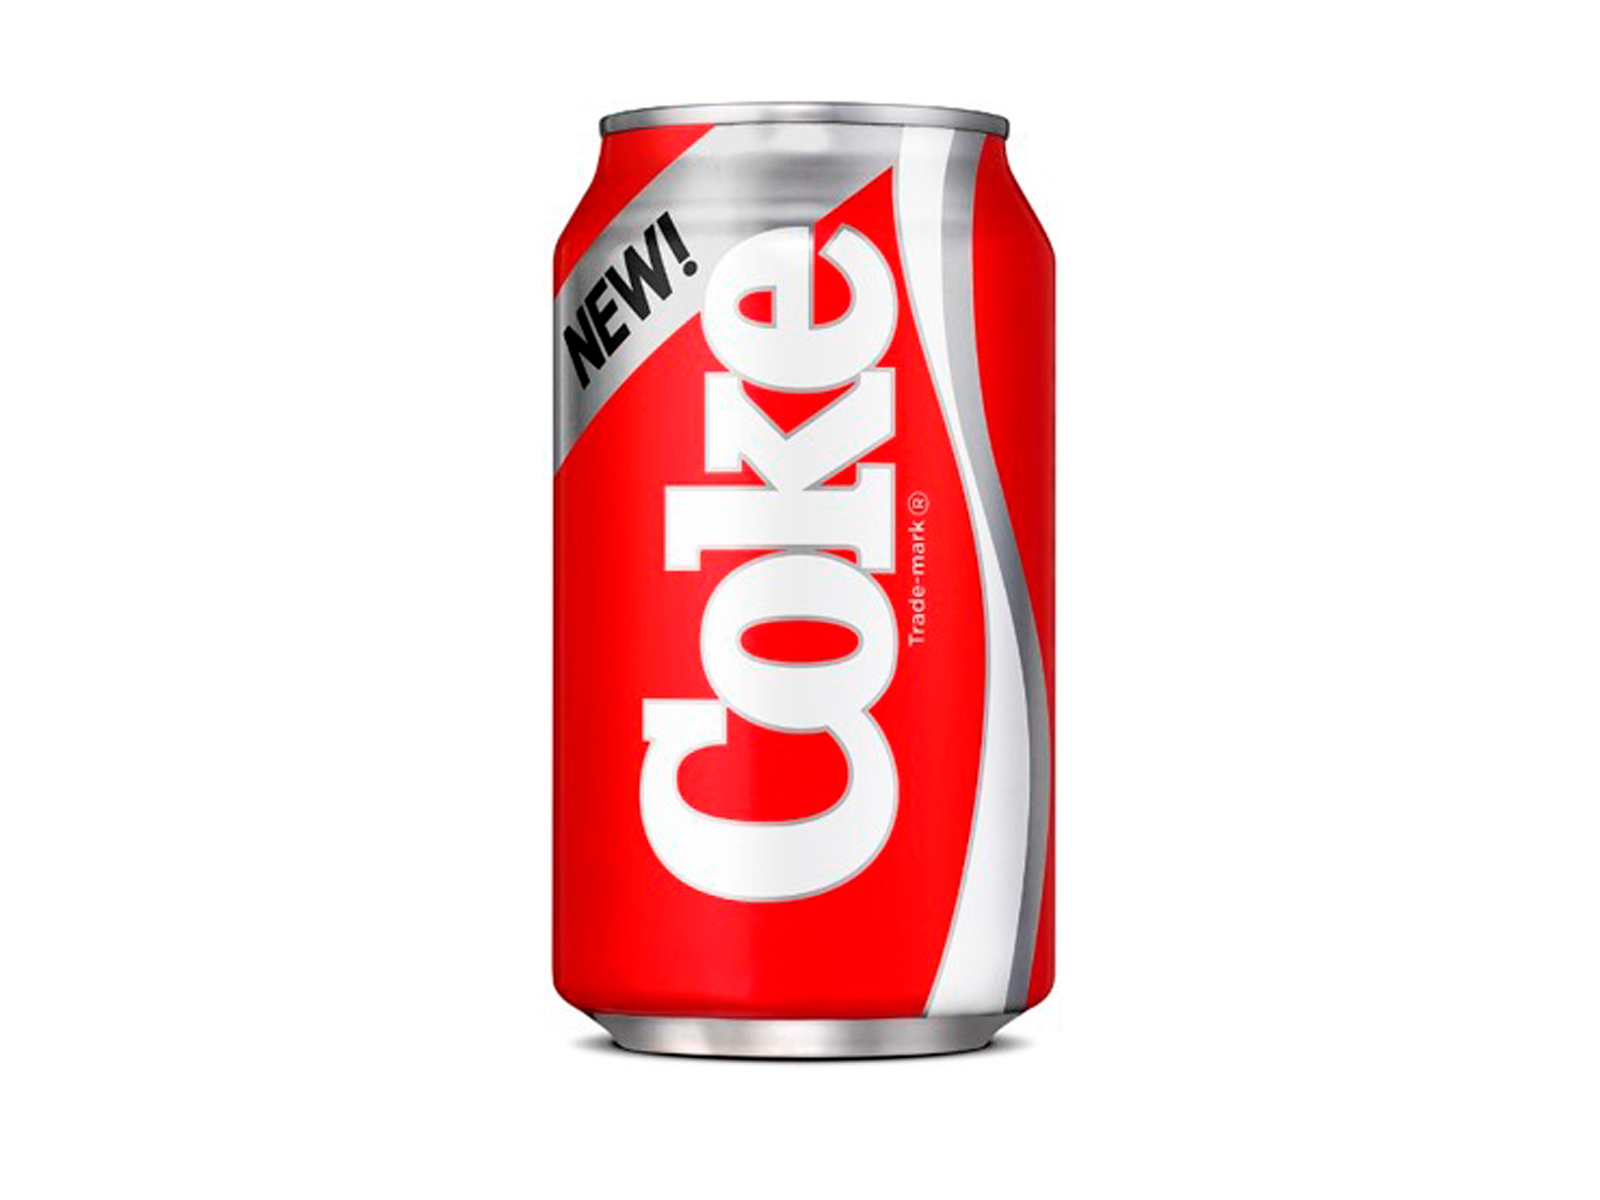 'New Coke' Is Coming Back This Summer, Thanks to 'Stranger Things' new-coke-can-FT-BLOG0519